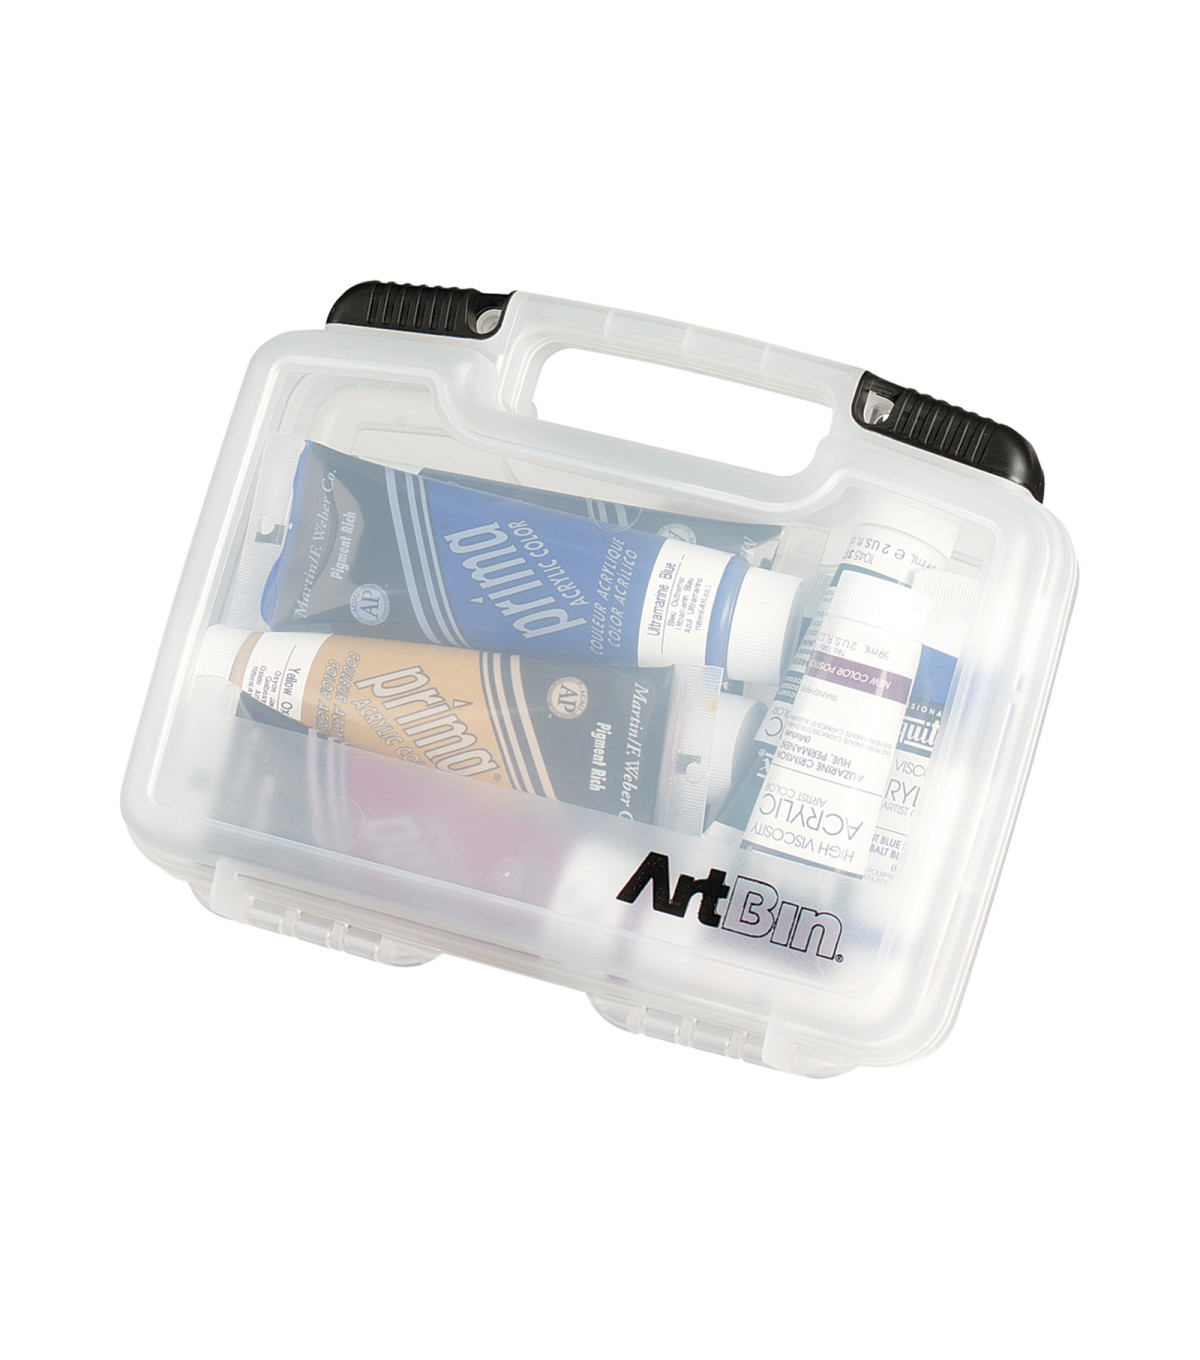 ArtBin Translucent Quick View Carrying Case-Small